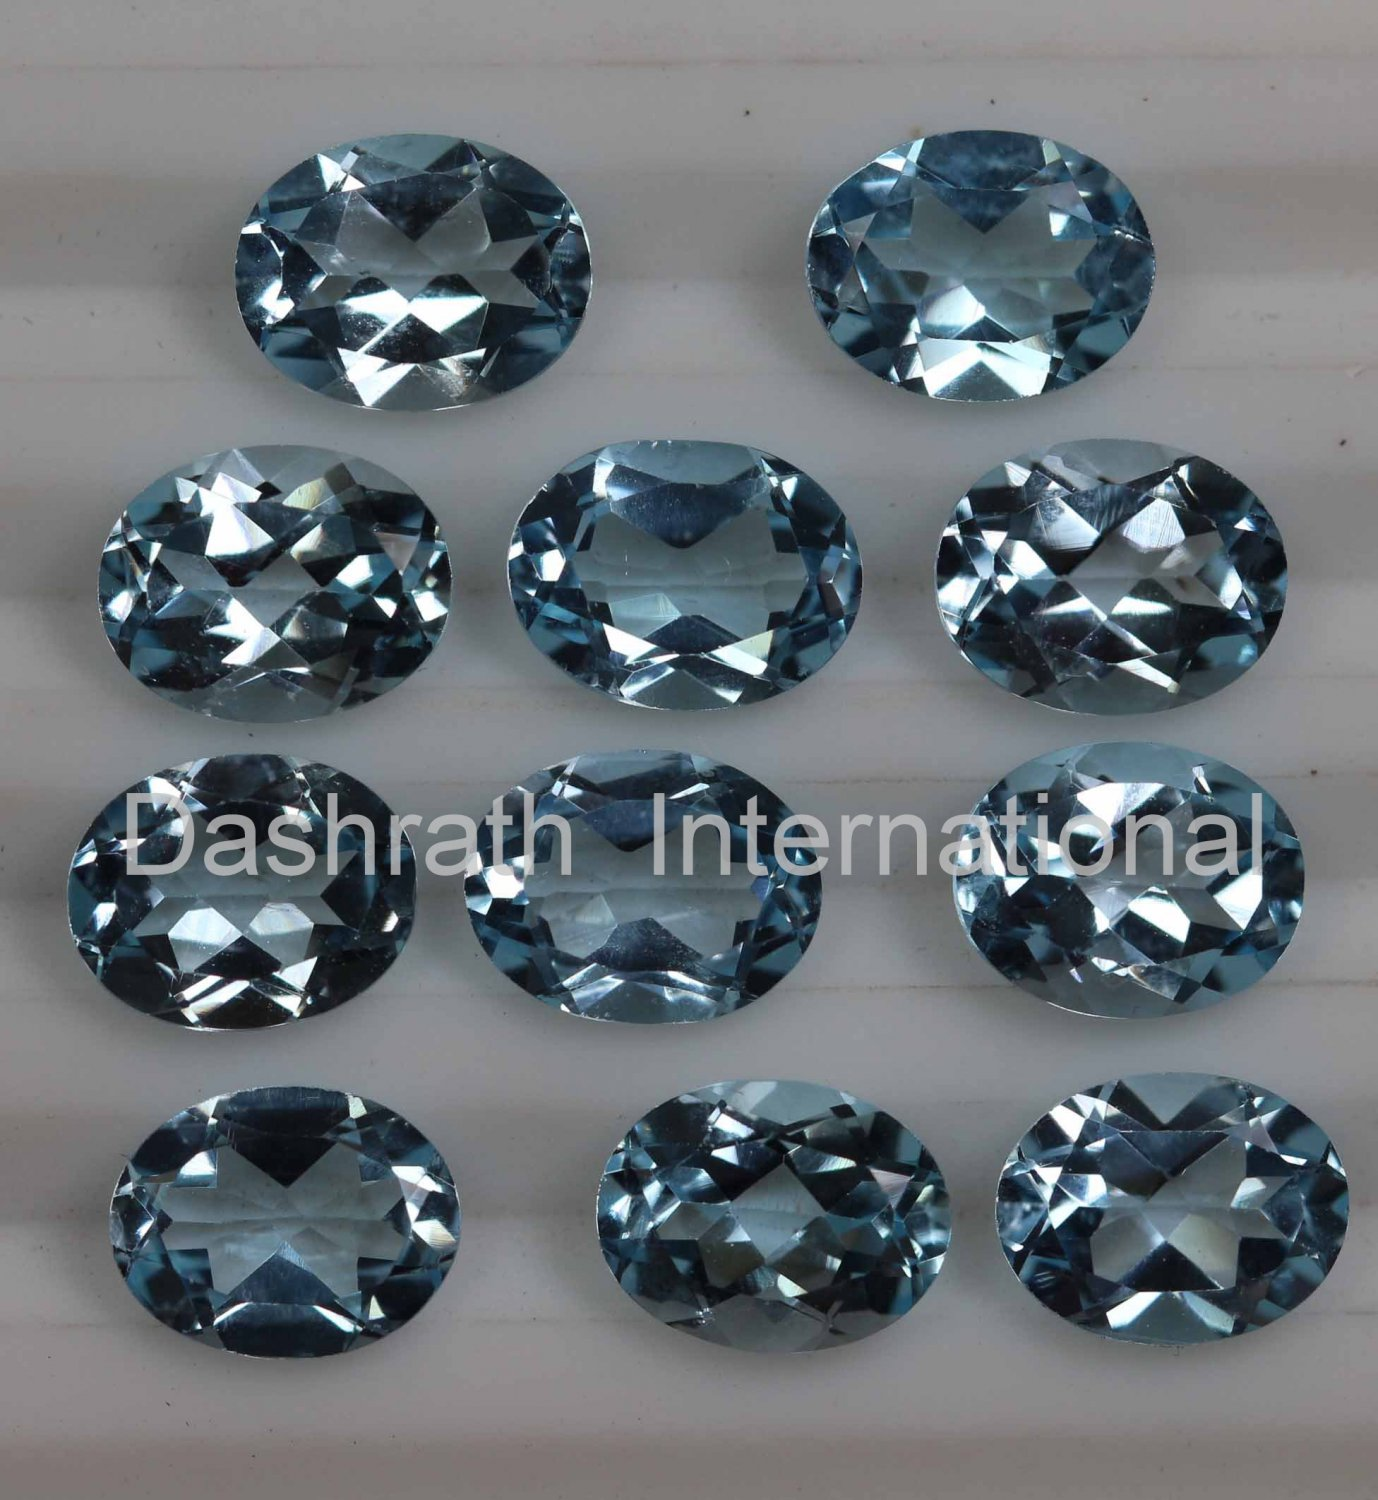 4x3mm Natural Sky Blue Topaz Faceted Cut Oval 5 Pieces Lot Blue Color  Top Quality Loose Gemstone